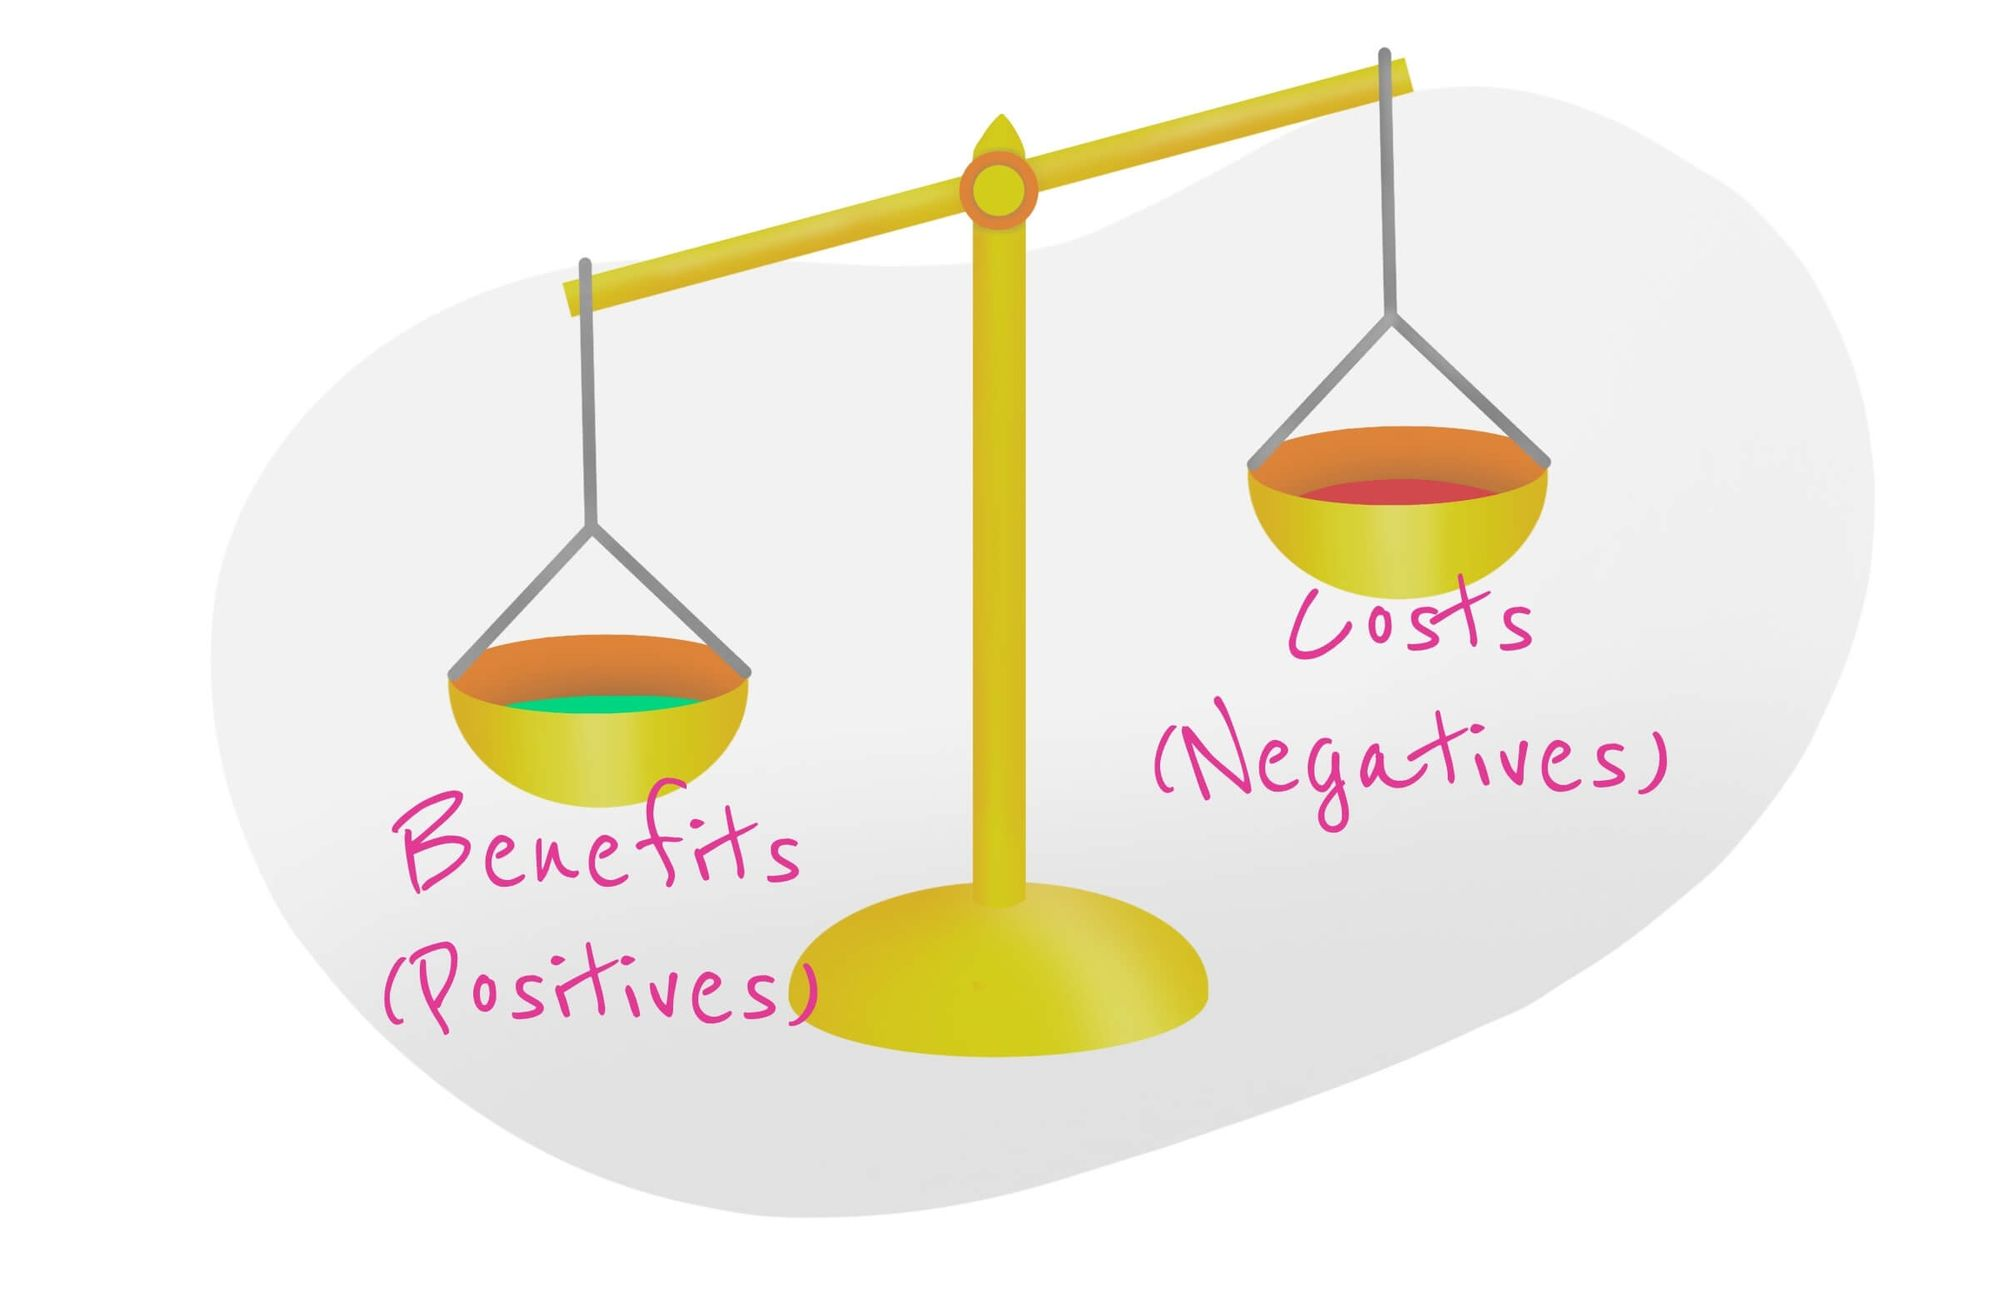 Weighing Benefits and Costs during cost-benefit analysis.